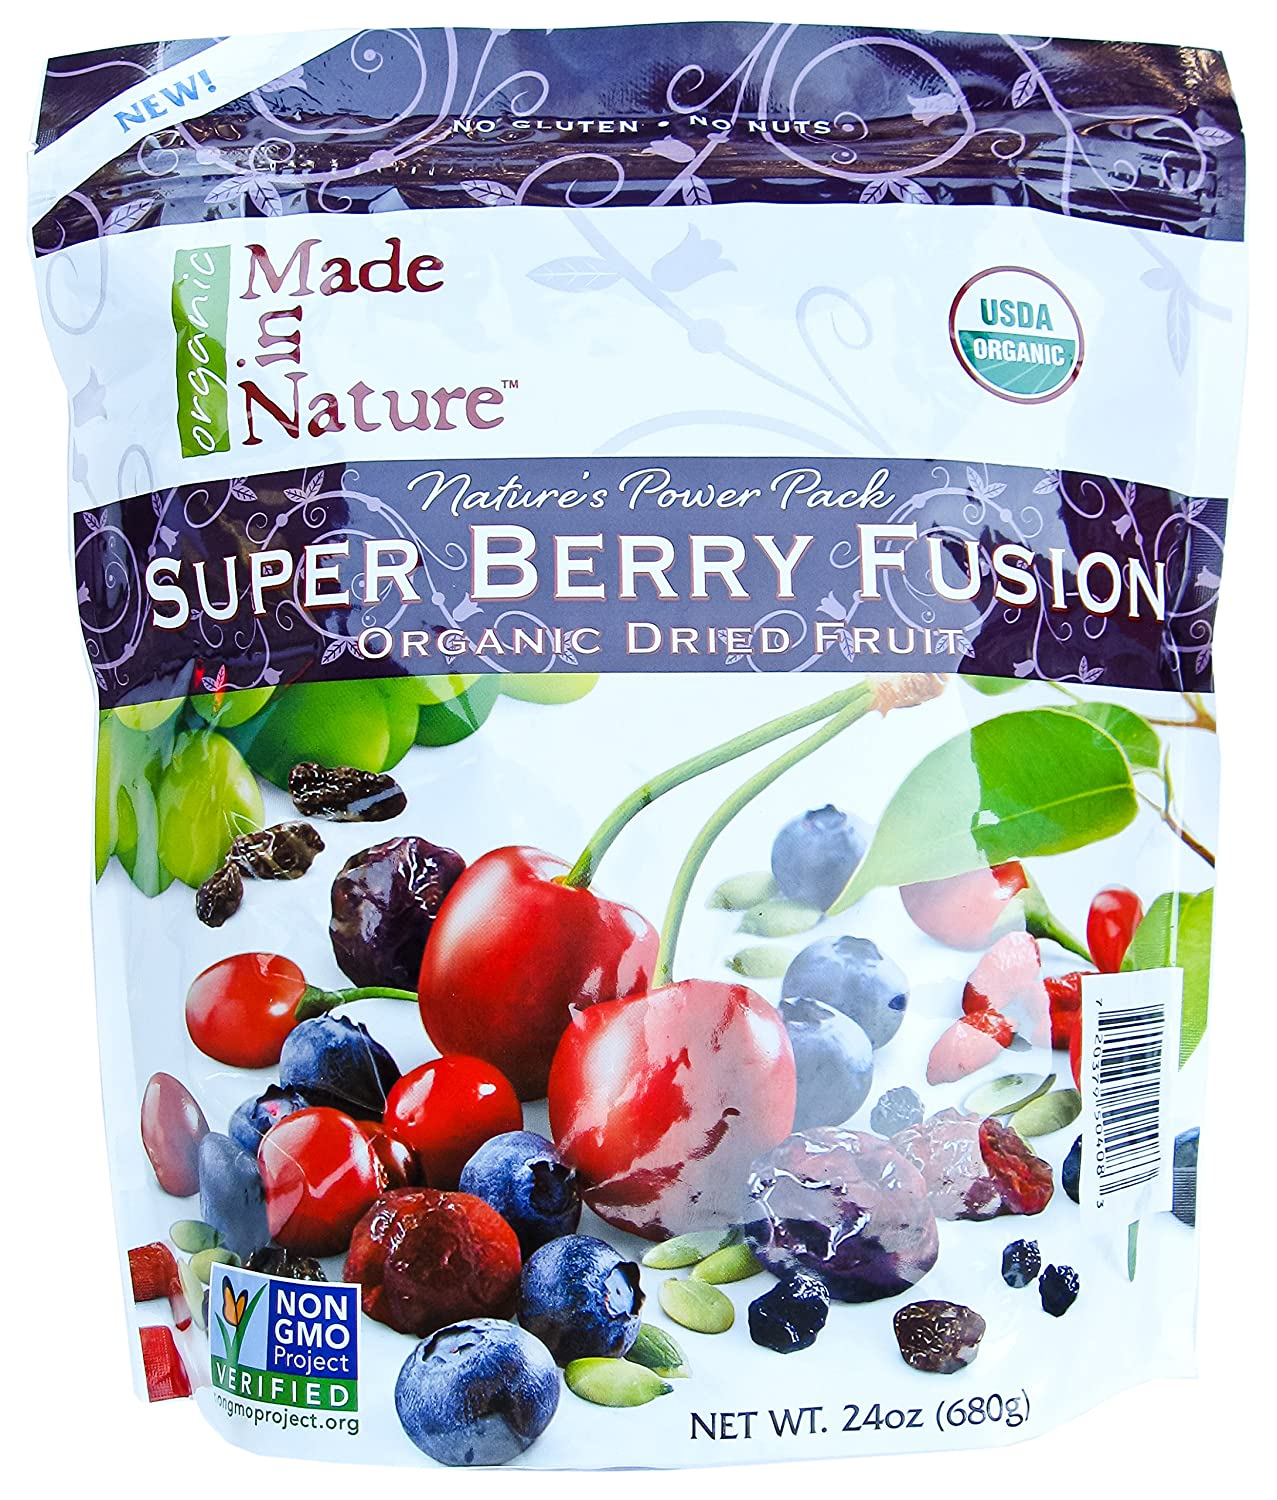 Made in Nature Organic Super Berry Fusion 24oz with optional 5 FREE SAMPLE STICKS of True Citrus Lemonade. made in nature organic super berry fusion 24oz with optional 5 free sample sticks of true citrus lemonade